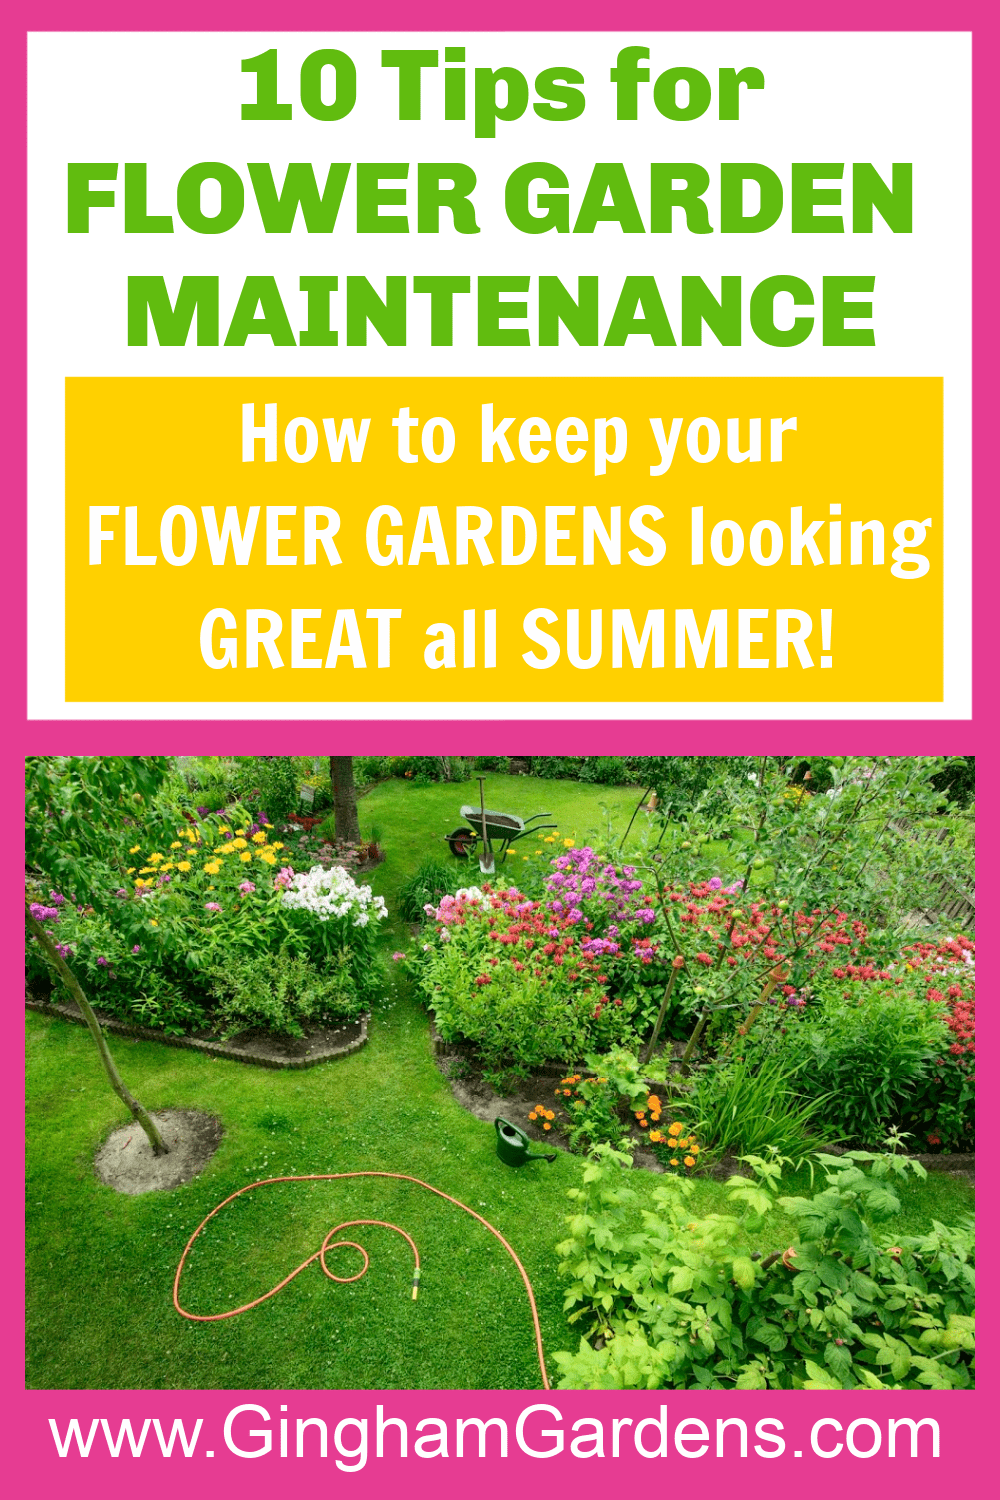 Image of a Flower Garden with Text Overlay - 10 Tips for Flower Garden Maintenance